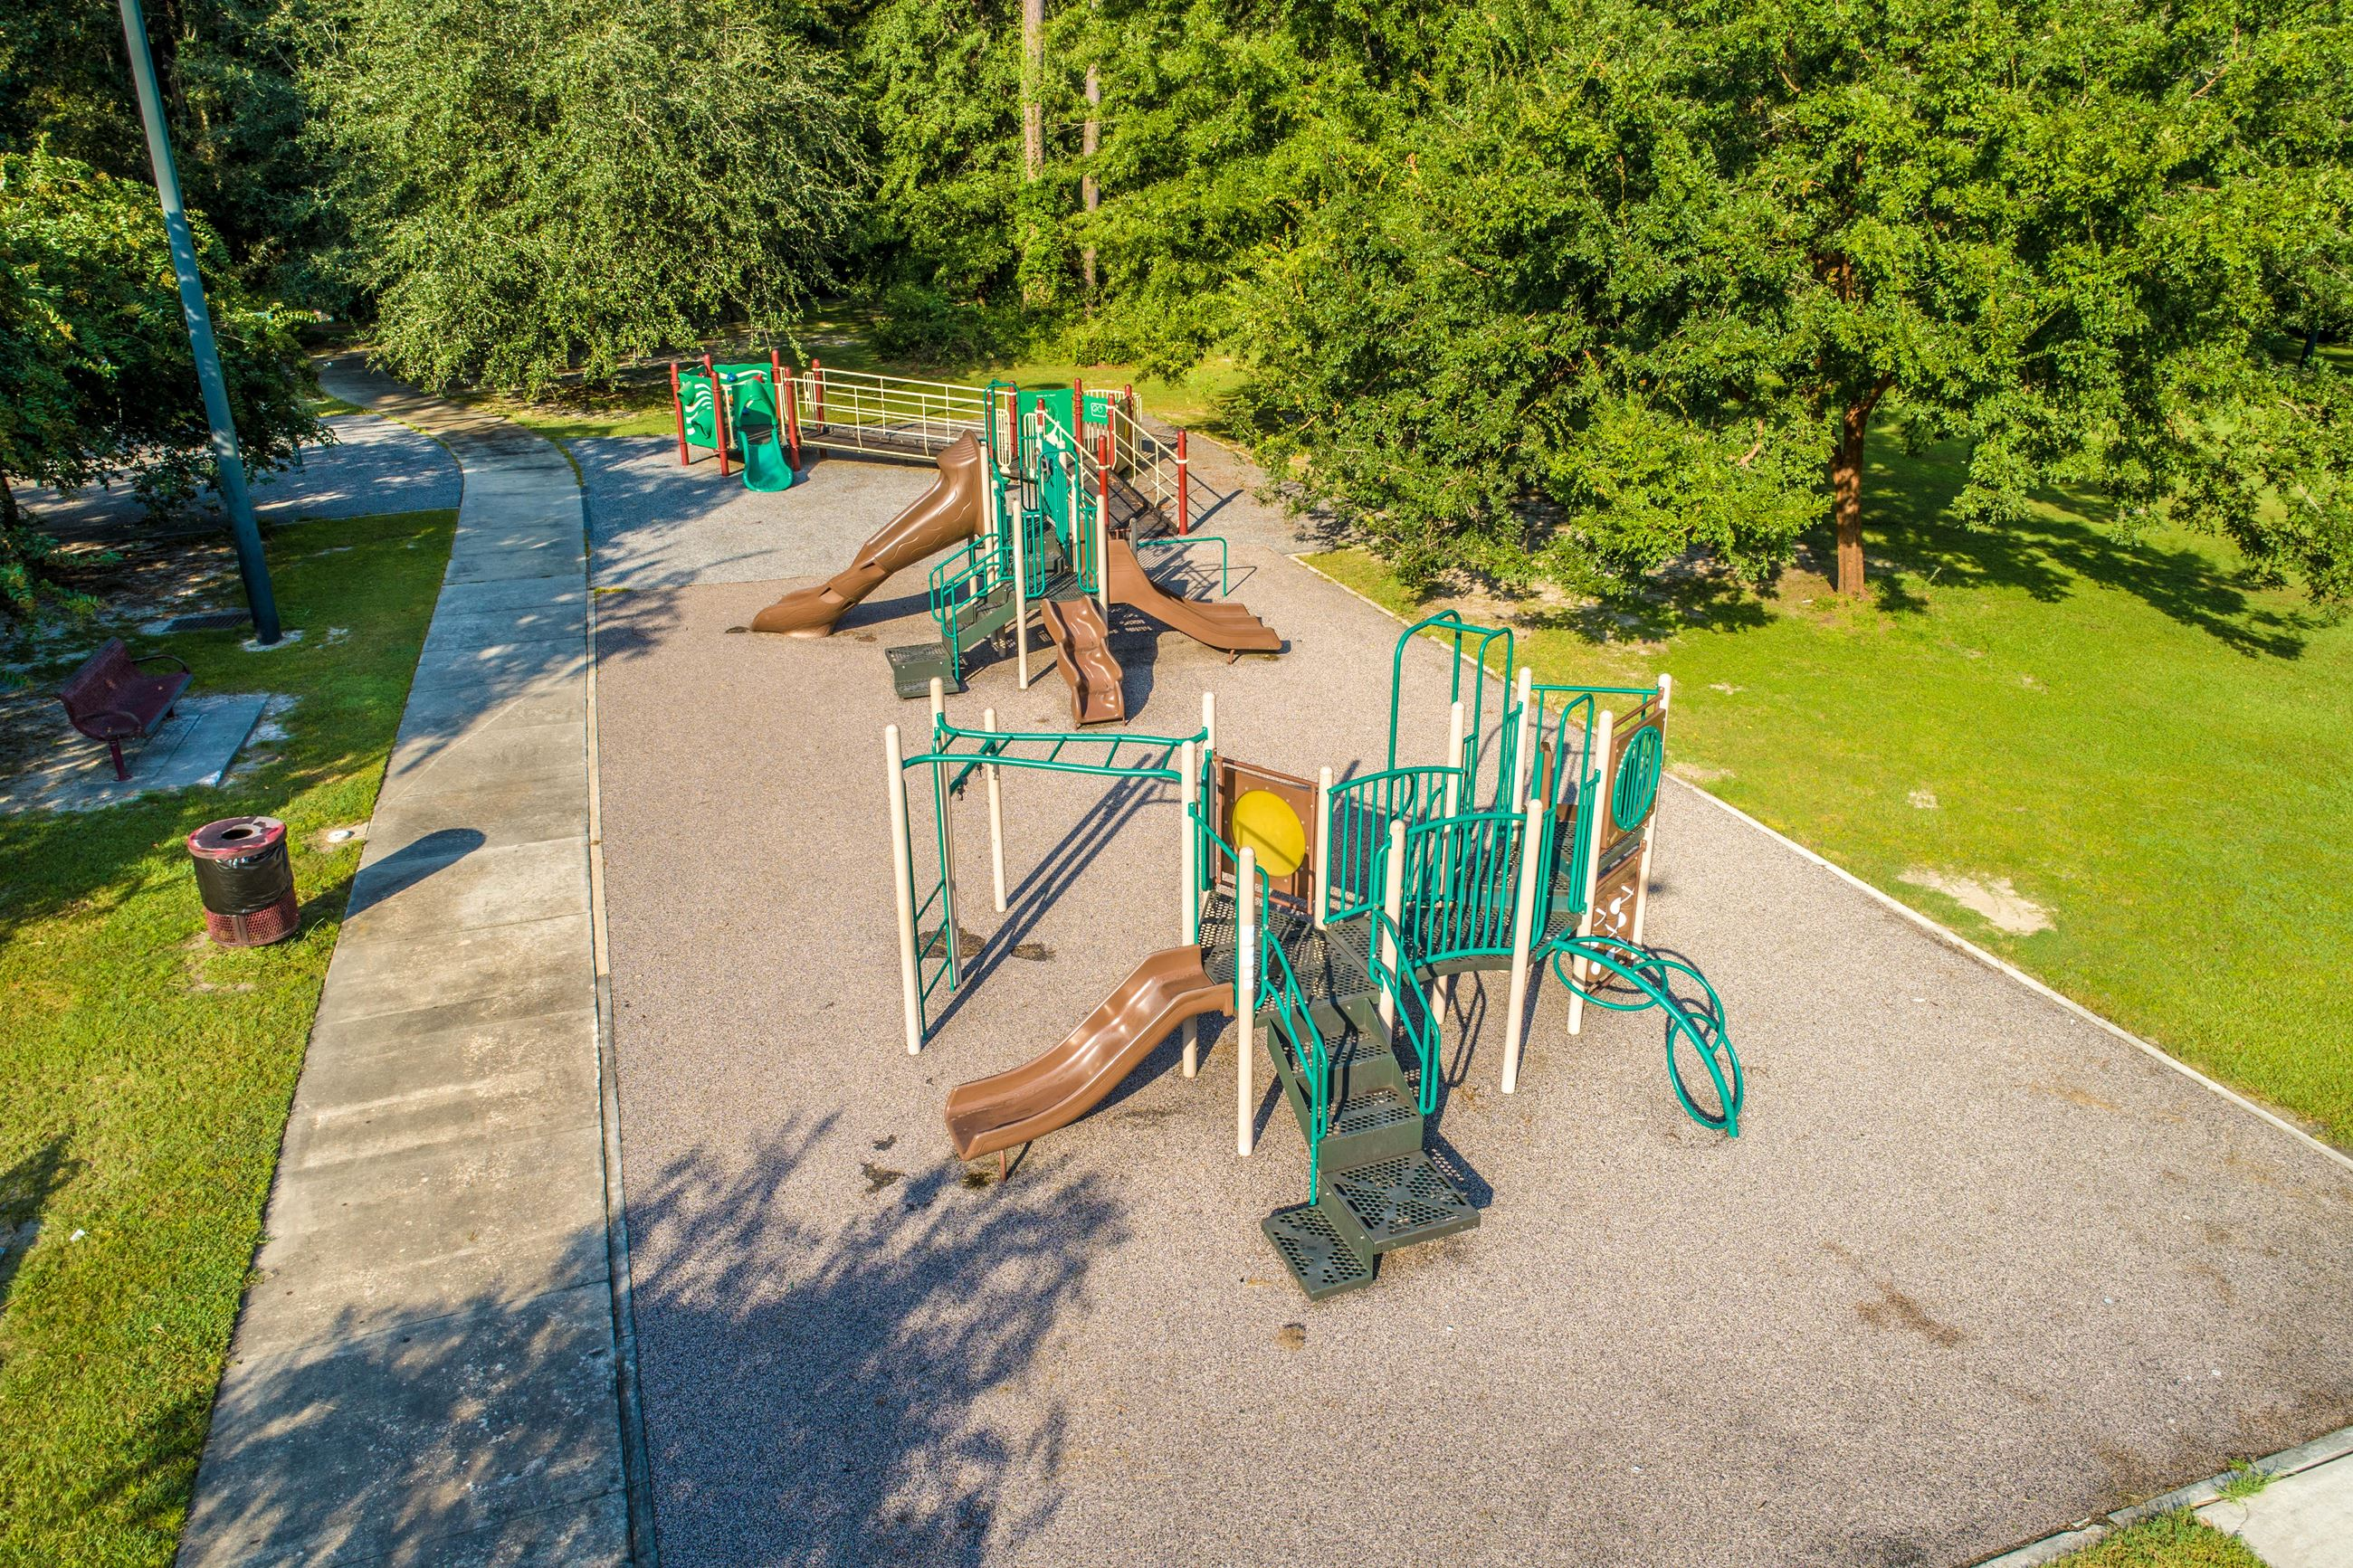 An image of an aerial view of a playground.